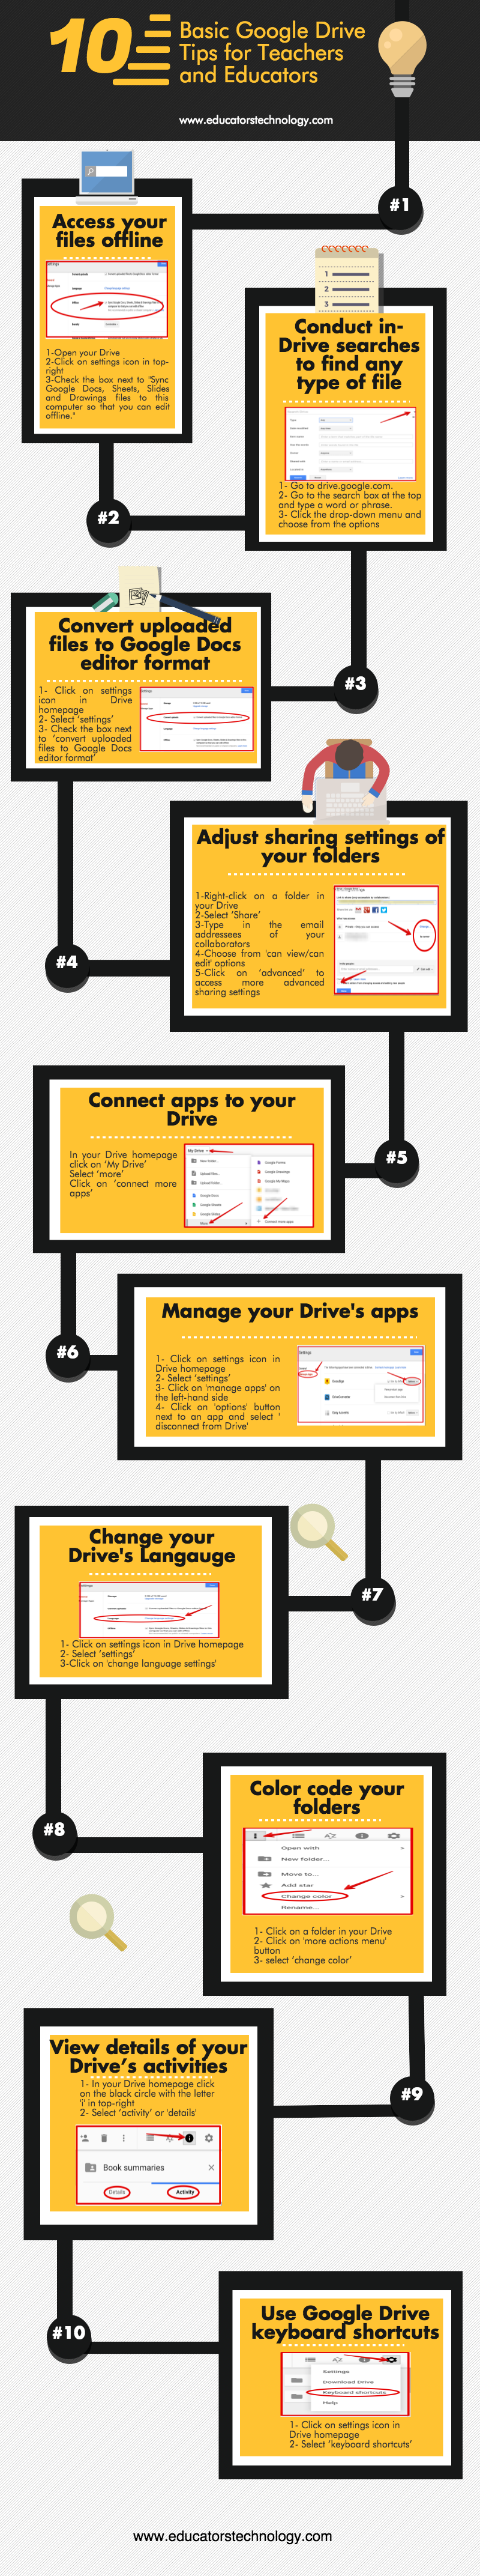 google drive tips for teachers